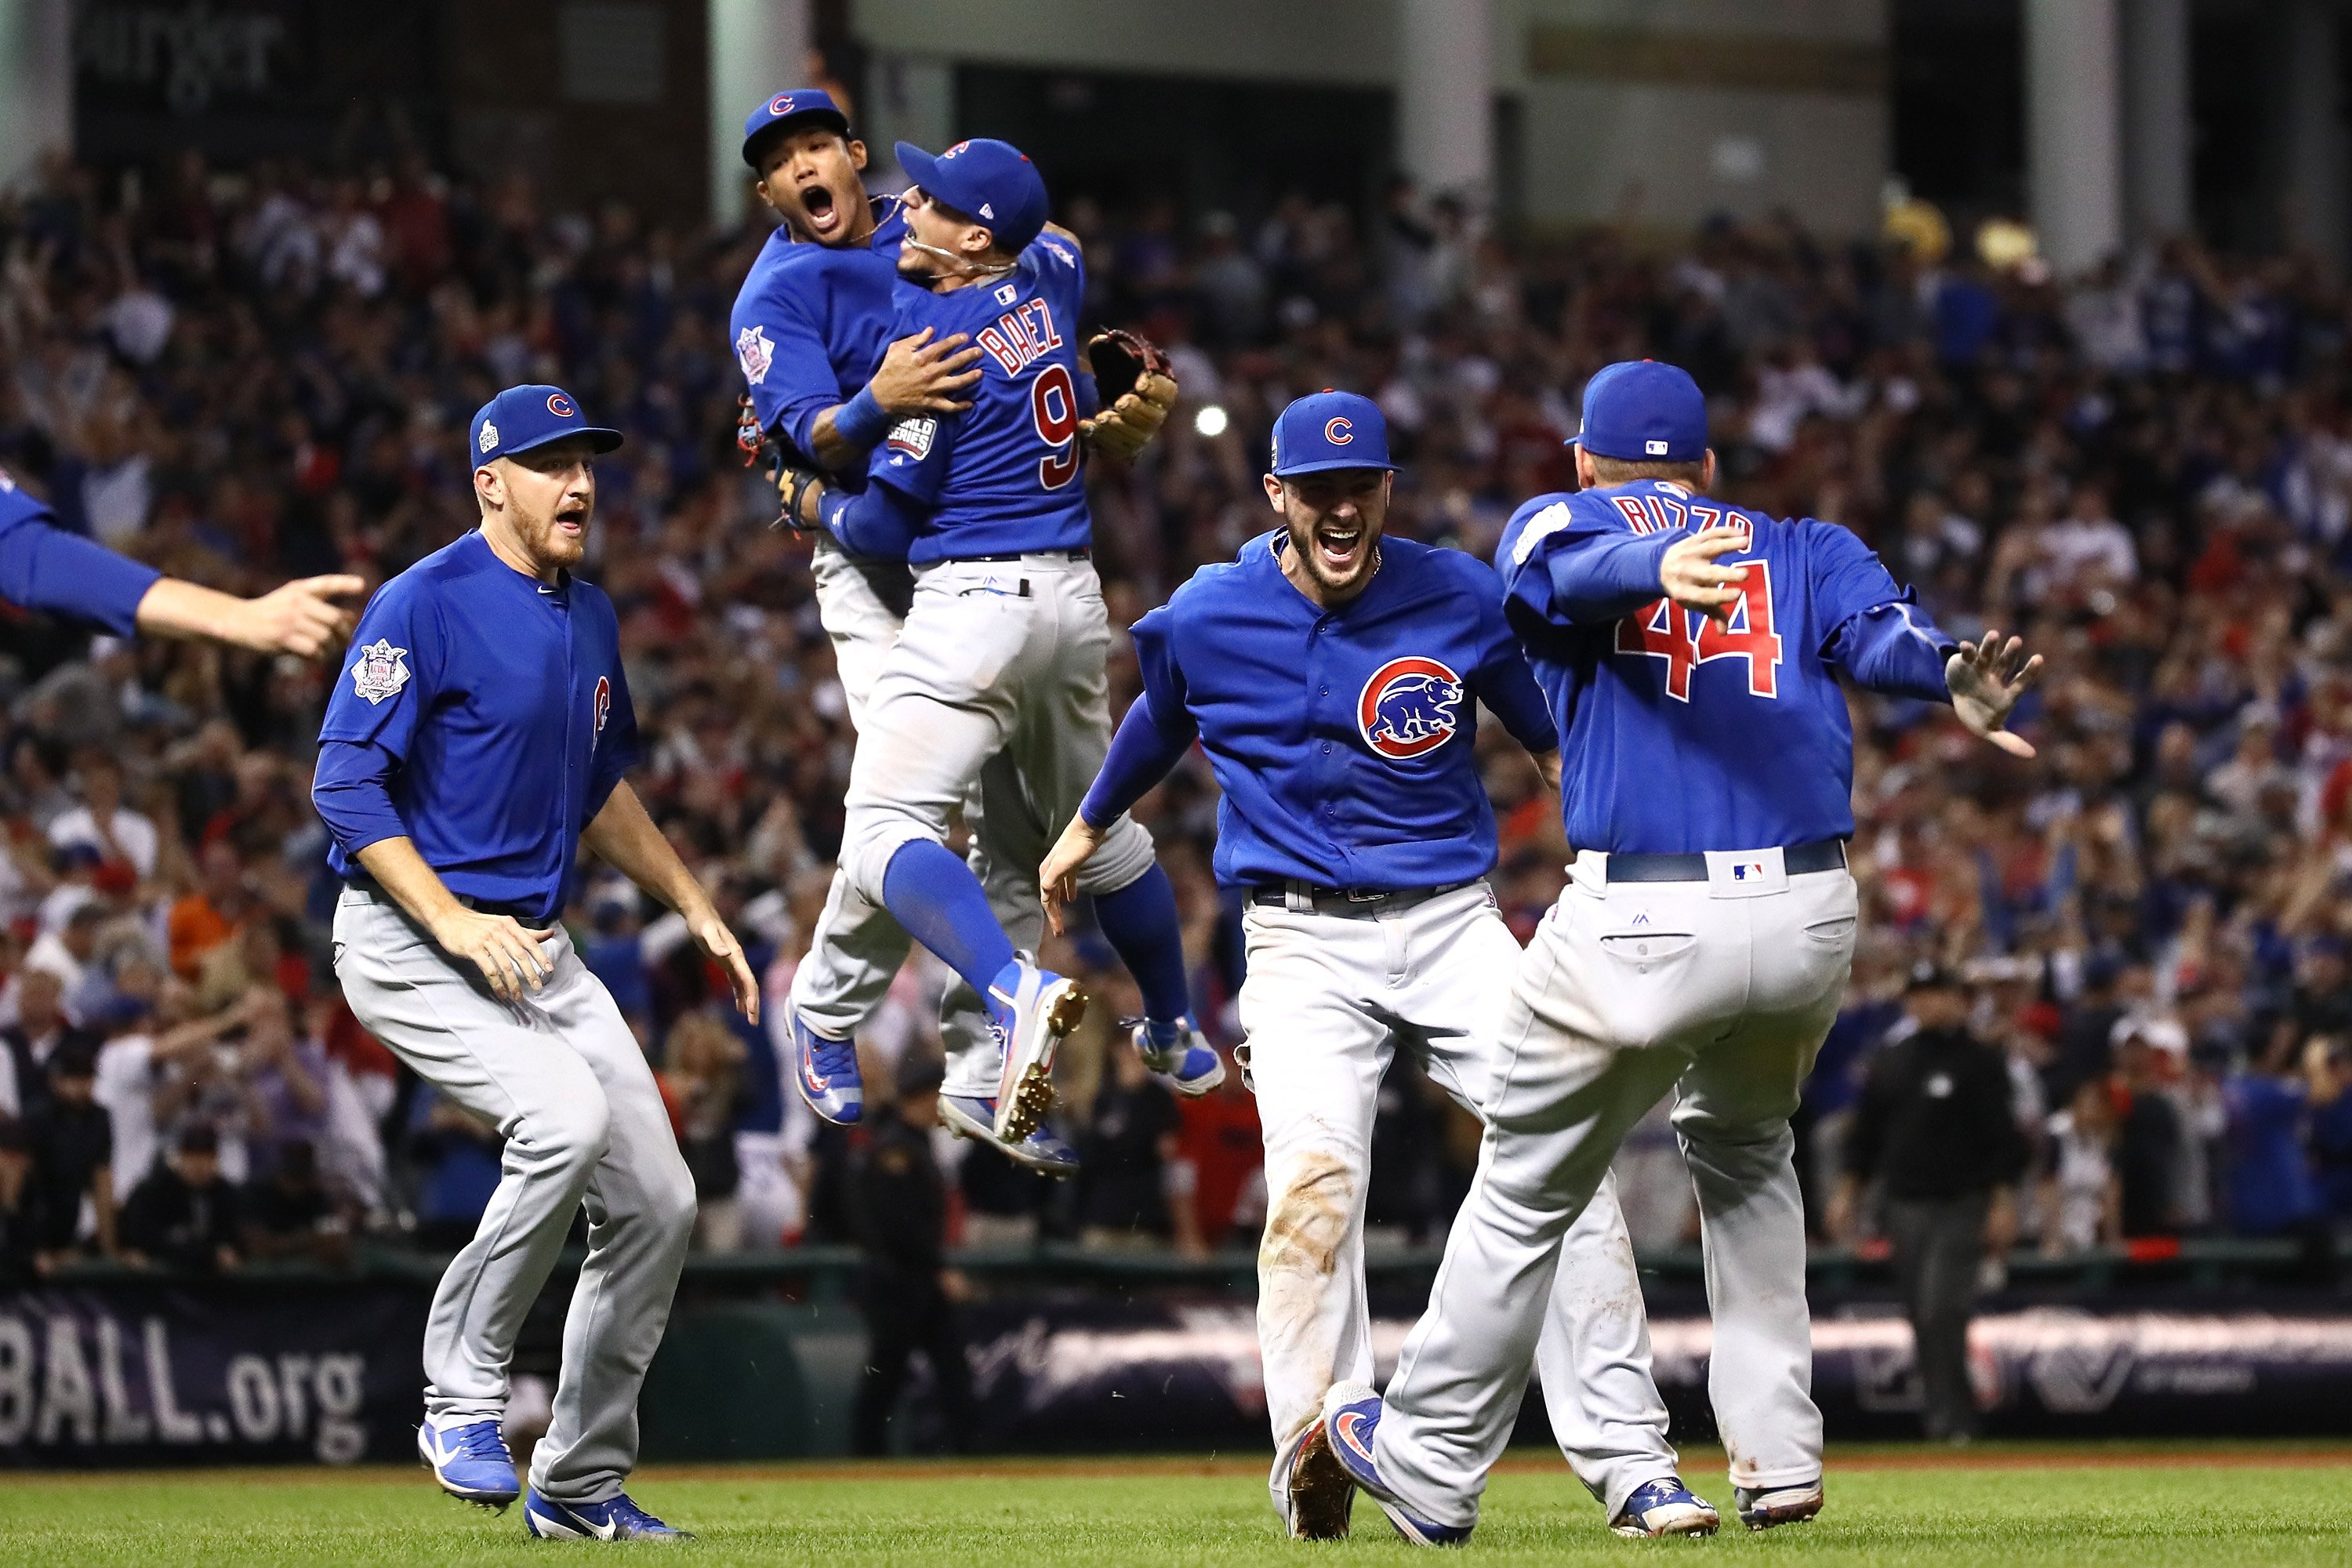 The Chicago Cubs celebrate after defeating the Cleveland Indians  8-7 in Game 7 to win baseball's 2016 World Series at Progressive Field on Nov. 3, 2016 in Cleveland.